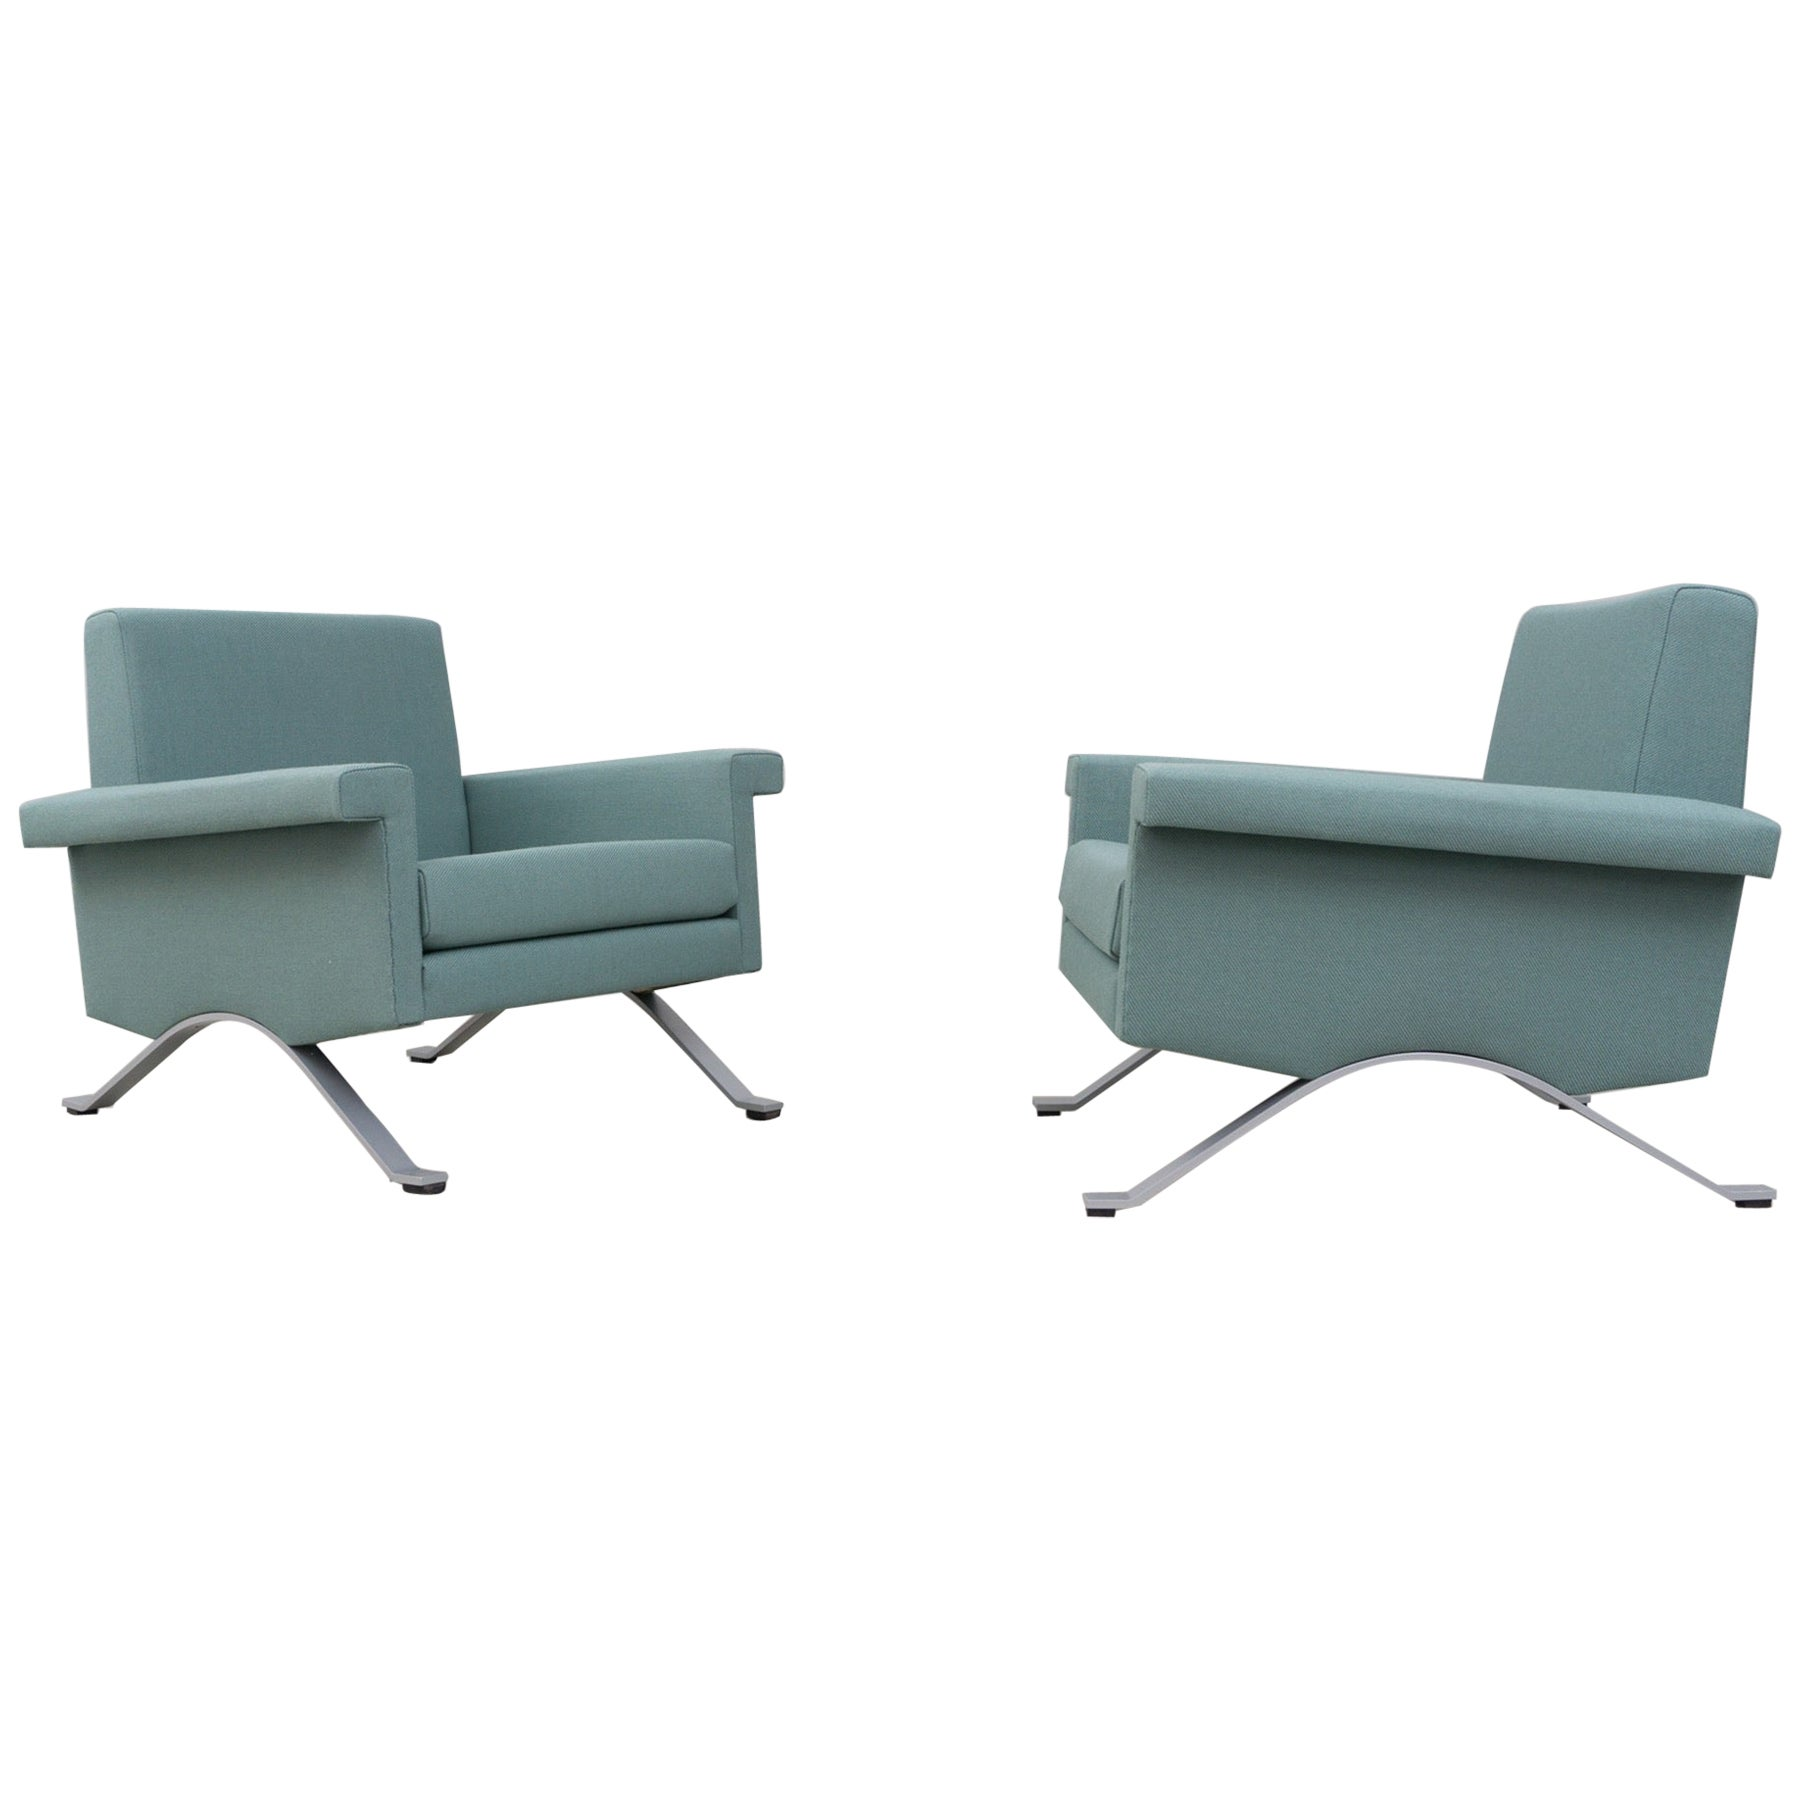 Pair of Armchairs in Grey-Green, Model '875', Ico Parisi, 1960